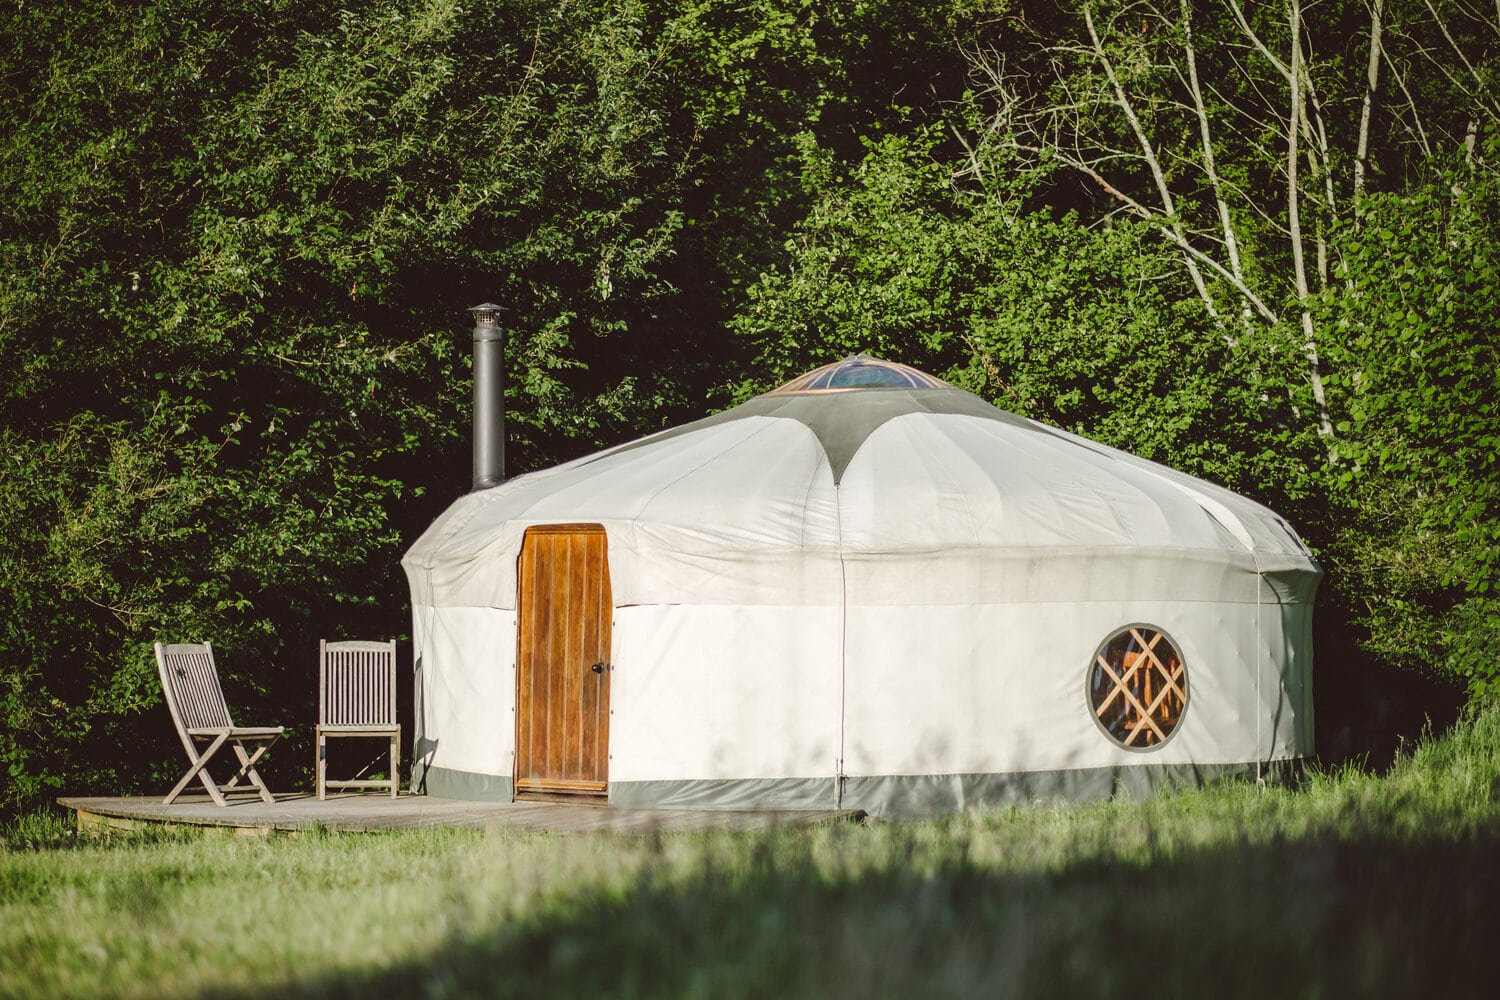 large-white-yurt-on-decking-with-deck-chairs-in-green-field-on-sunny-day-round-the-woods